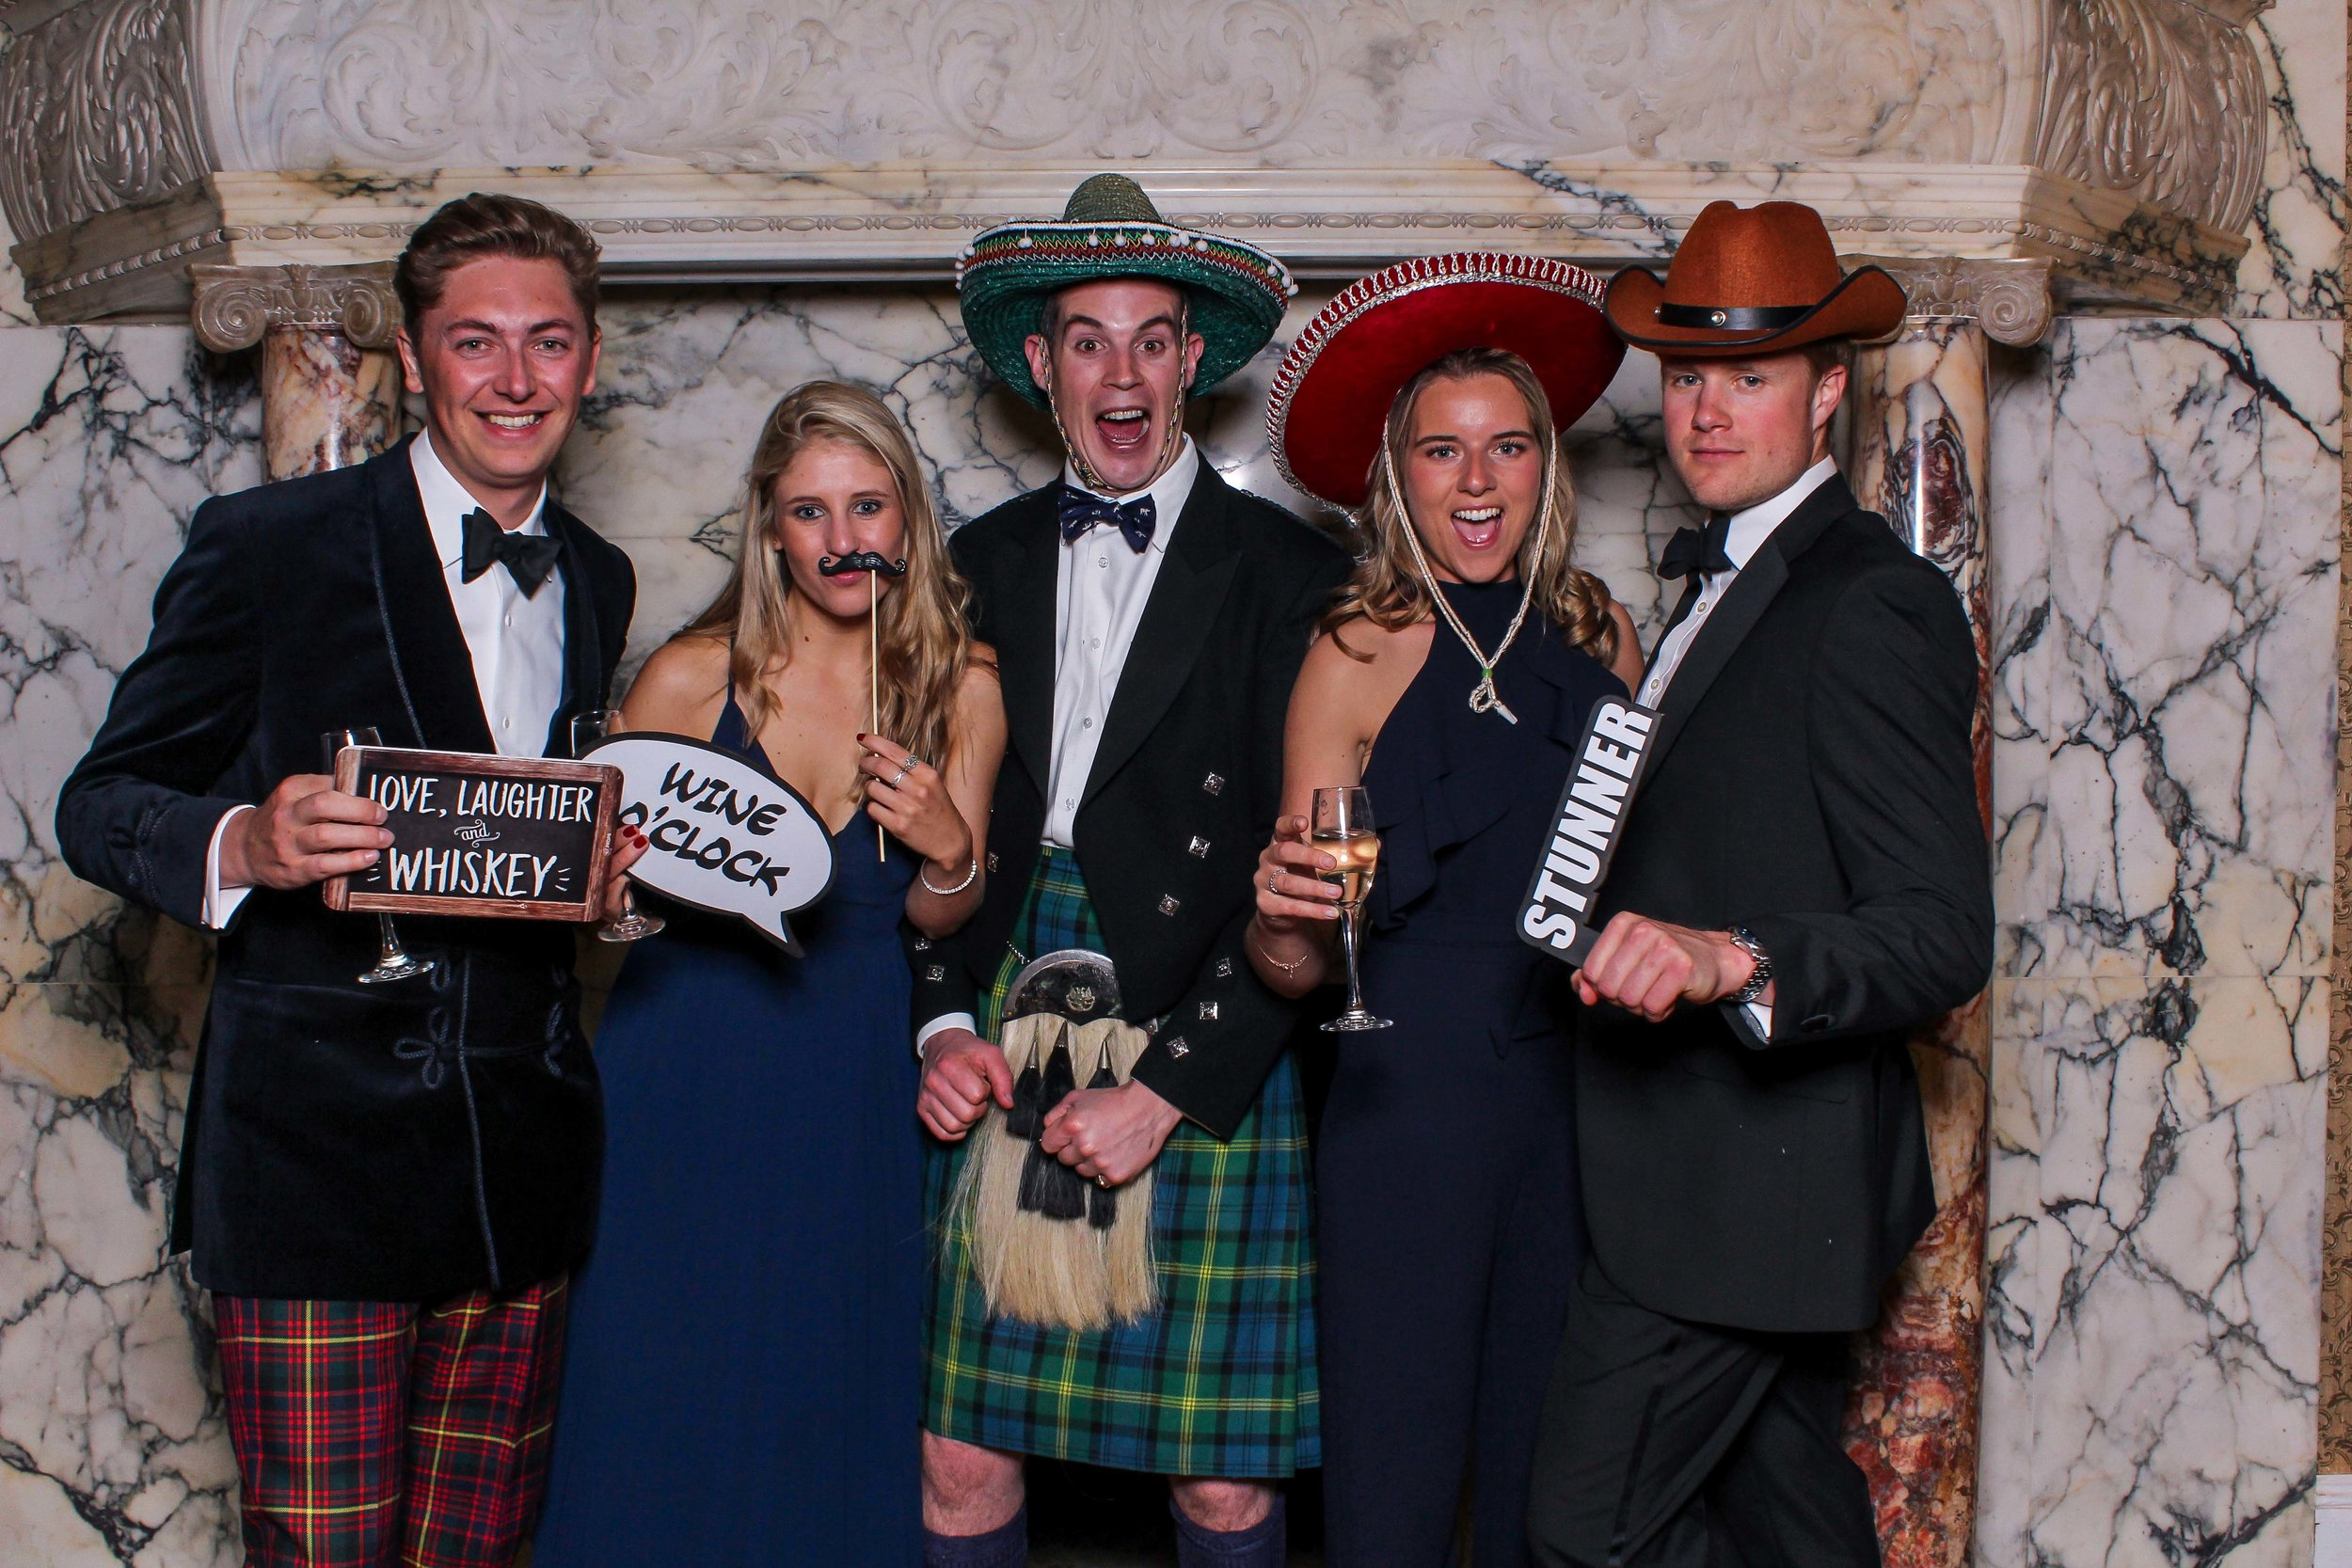 Balcombe place launch party - Saturday 12th May 2018Photo Booth Pictures with Fresh Booths